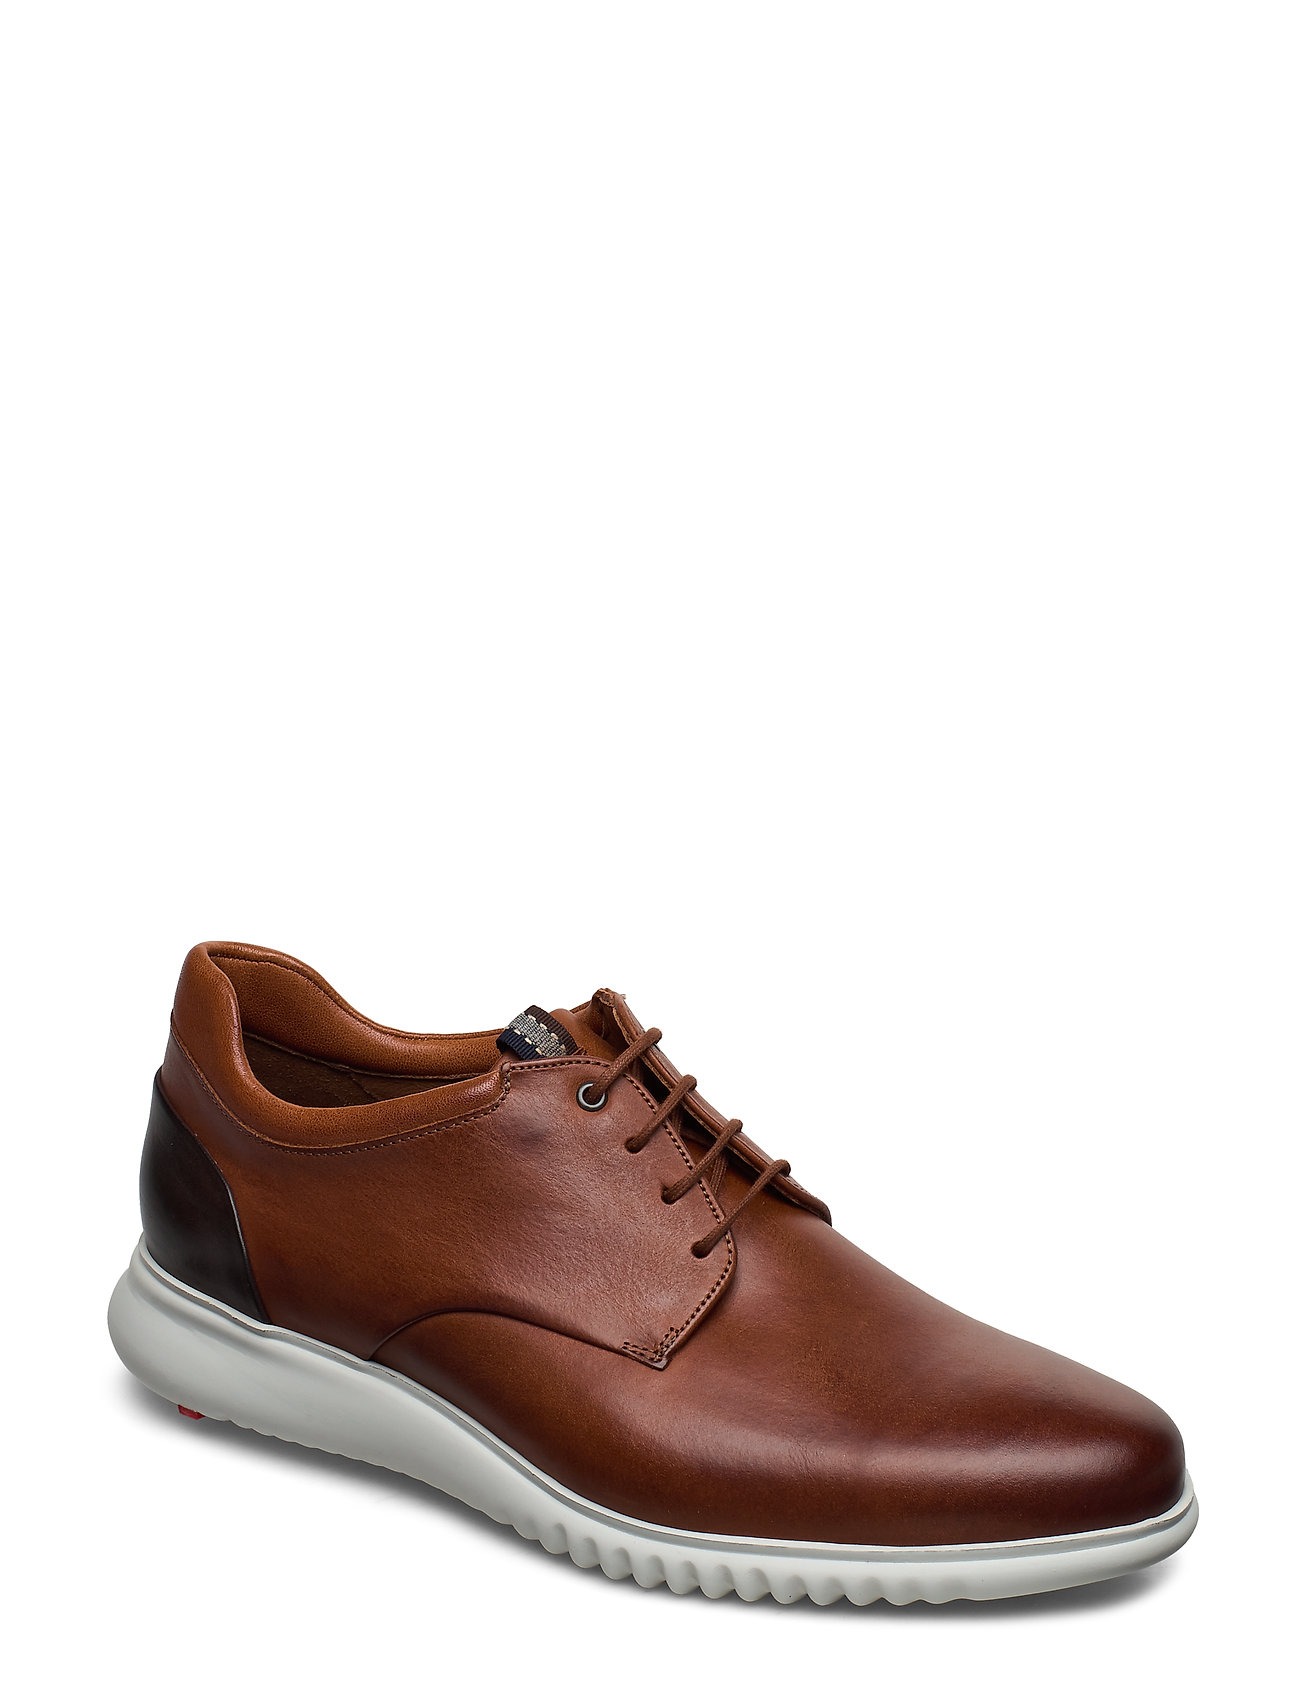 Image of Aristo Shoes Business Laced Shoes Brun Lloyd (3314198405)